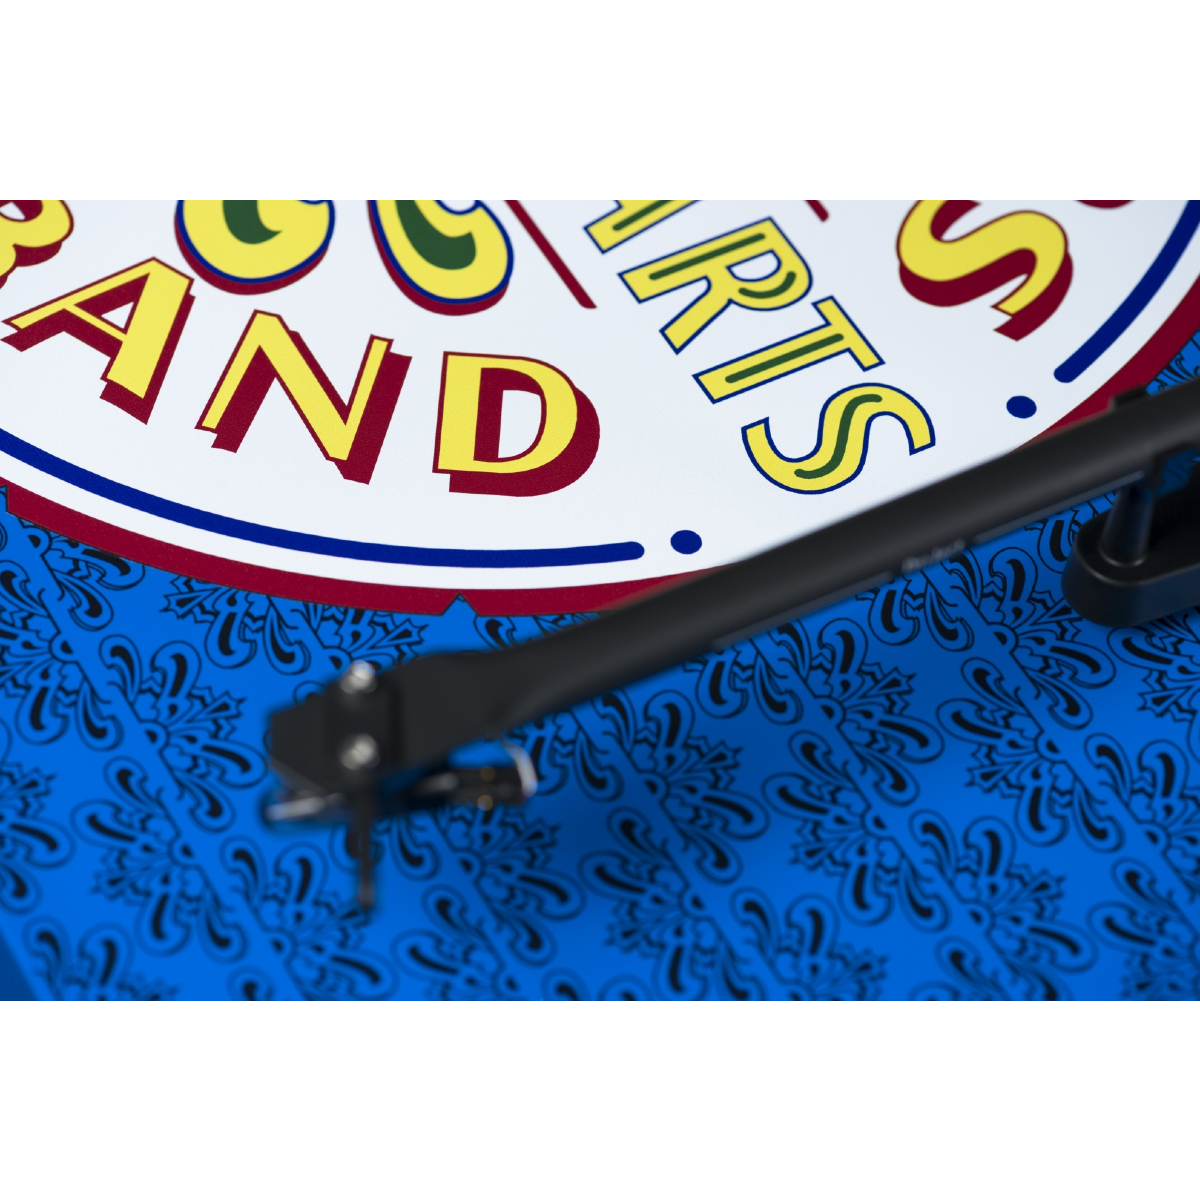 Pro-ject Essential III – Sgt. Pepper Turntable